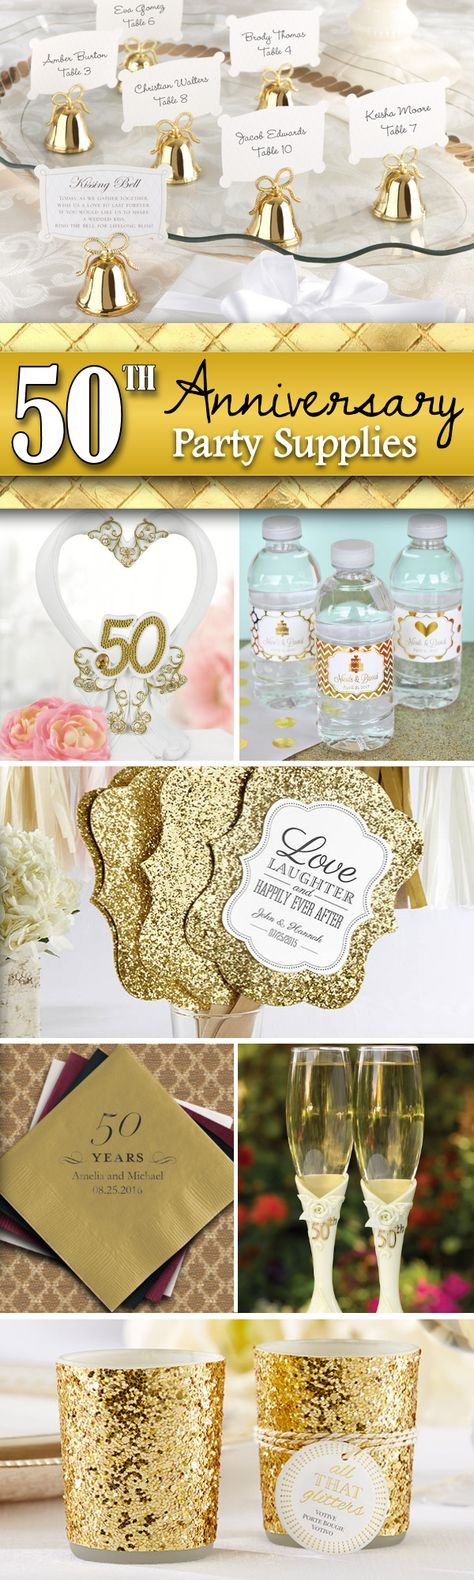 Throwing A 50th Wedding Anniversary Party Get All The Supplies For Golden Bash